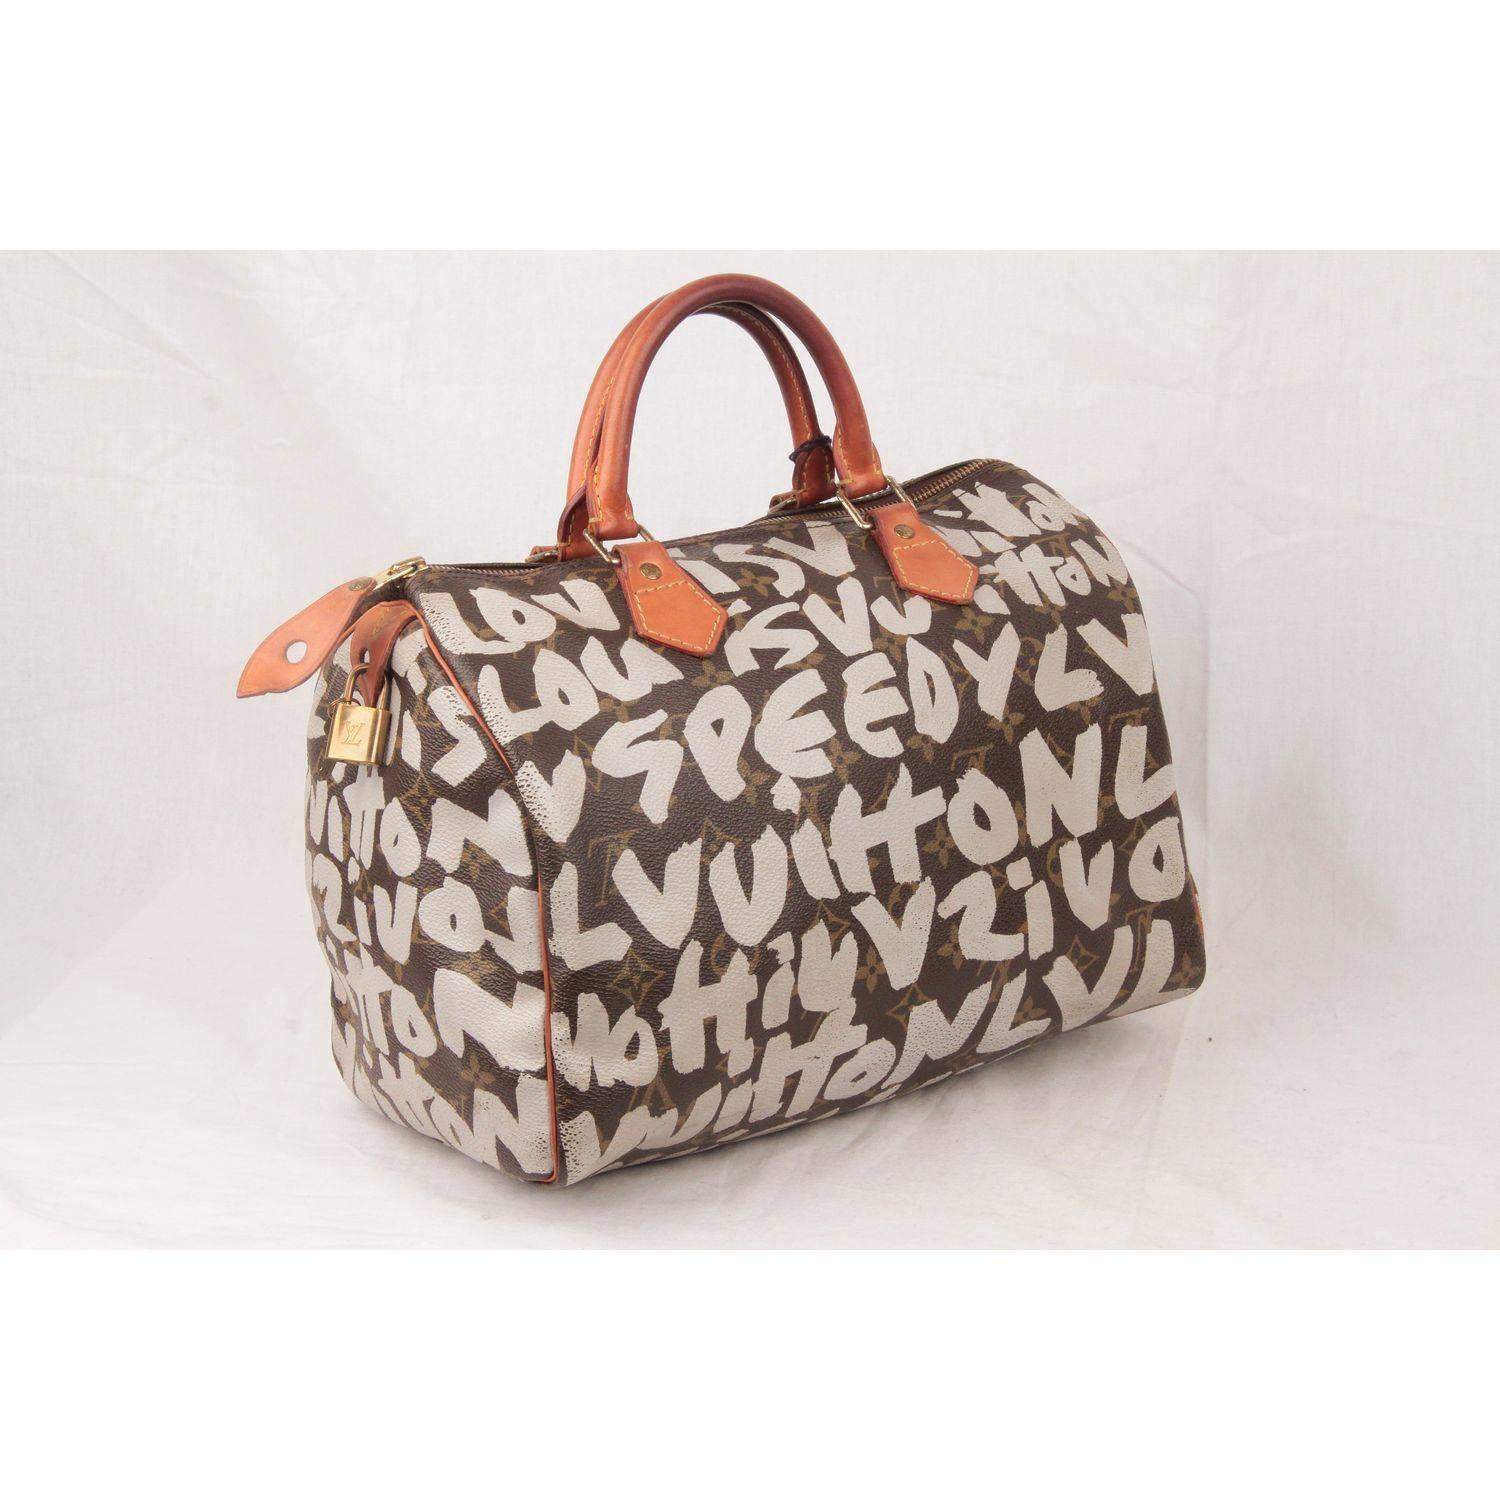 2af8ed920f3e0 Louis Vuitton Limited Edition Stephen Sprouse Graffiti Speedy 30 Bag For  Sale at 1stdibs